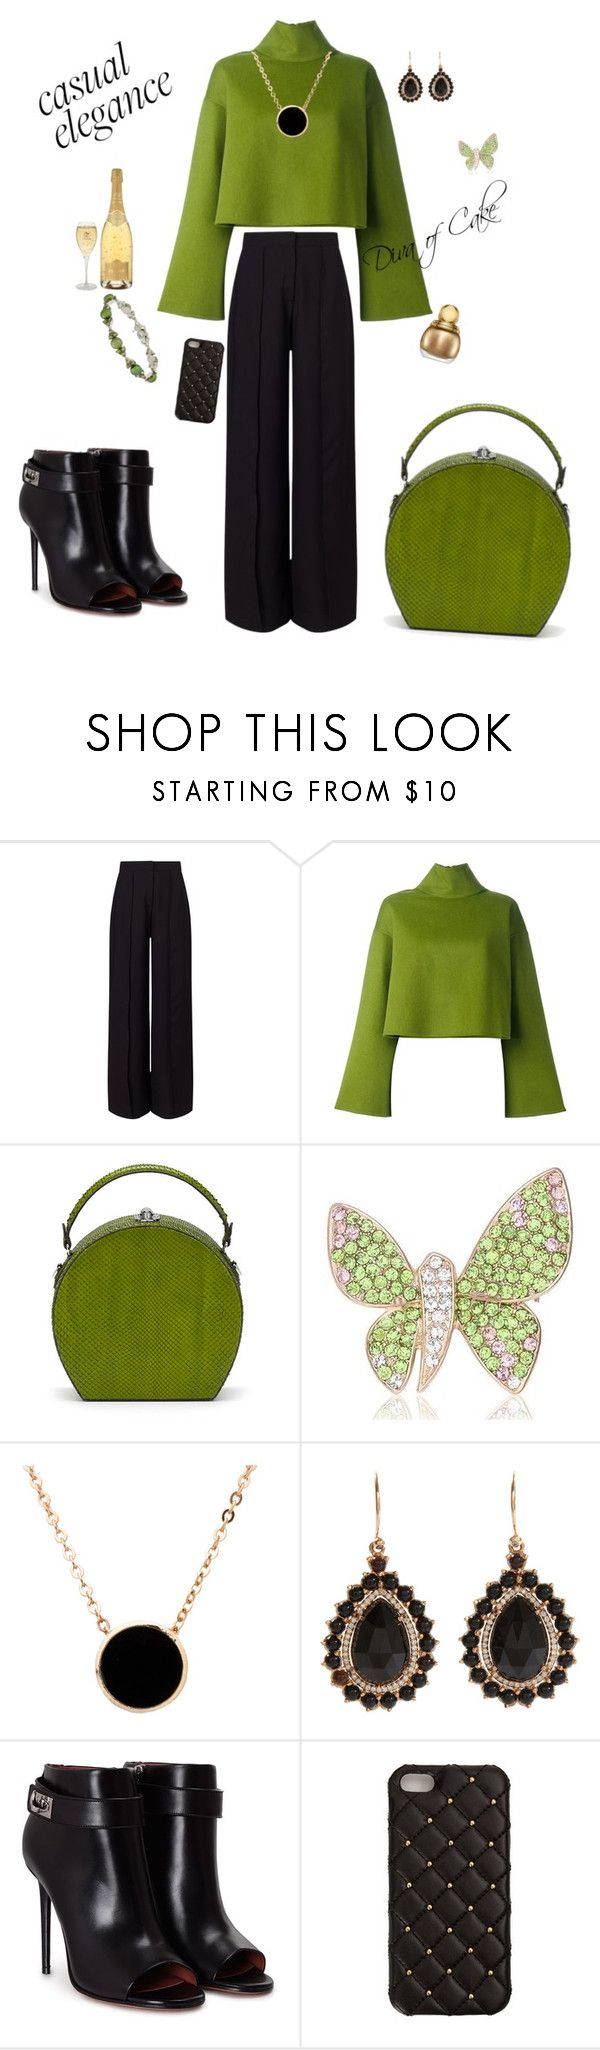 """Green and black outfit"" by Diva of Cake on Polyvore featuring Miss Selfridge, Bally, Bertoni, American Apparel, Irene Neuwirth, Givenchy, 2Me Style and Honora"